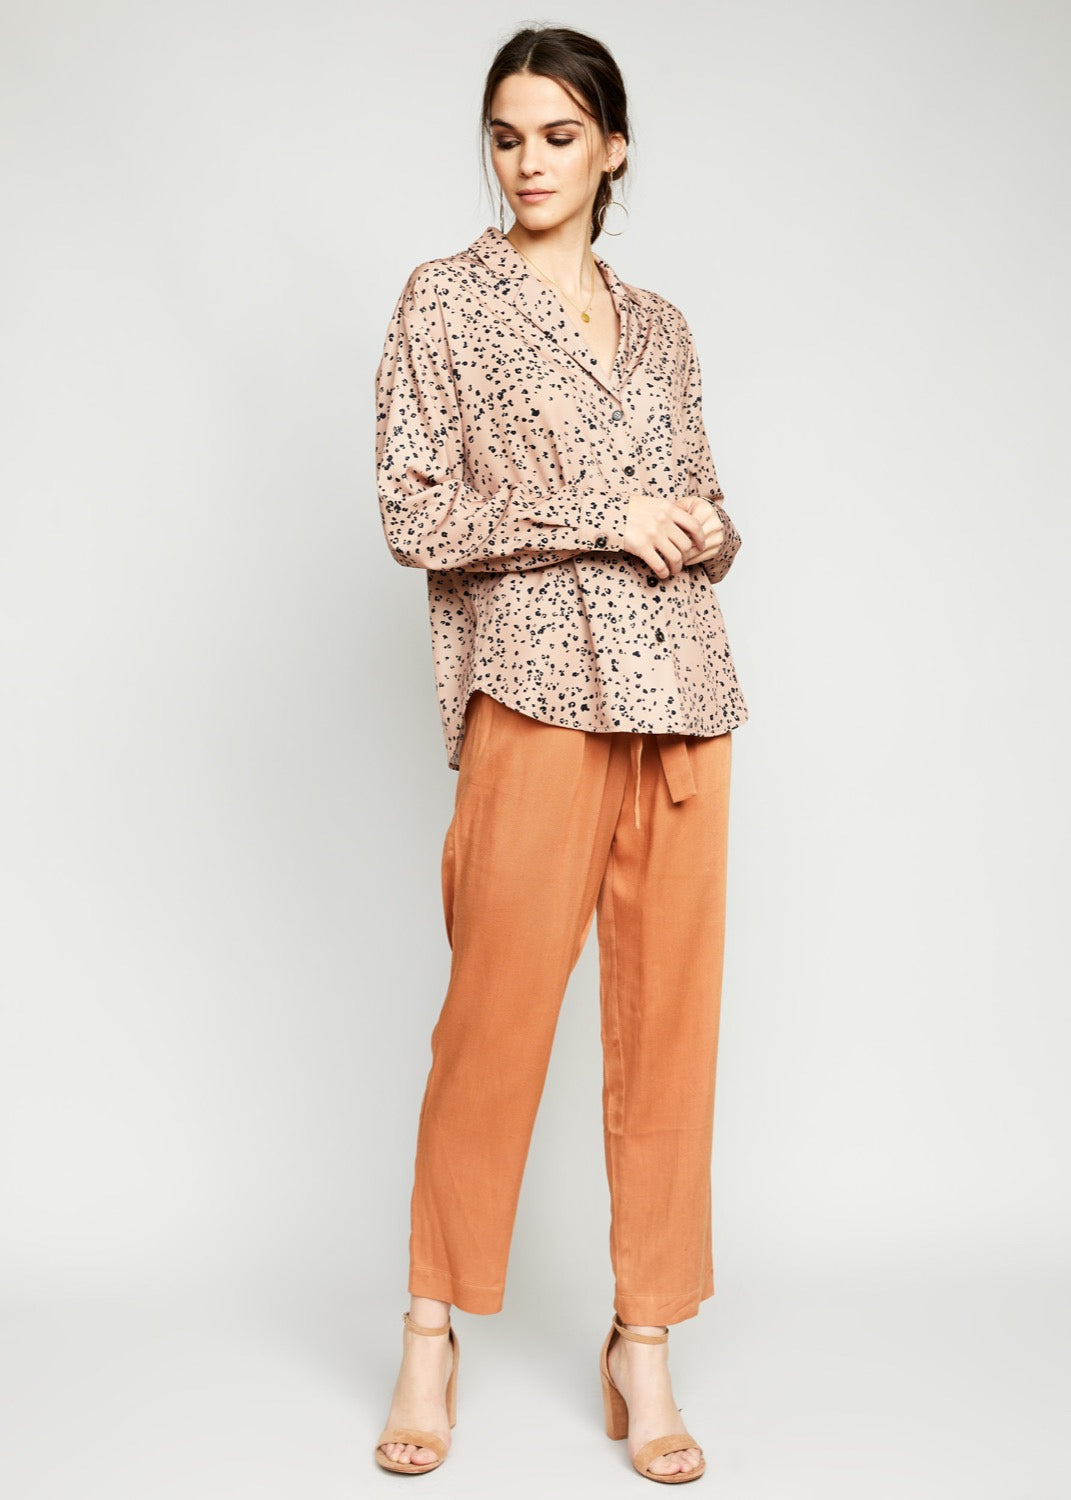 The Good Jane Muse Blouse